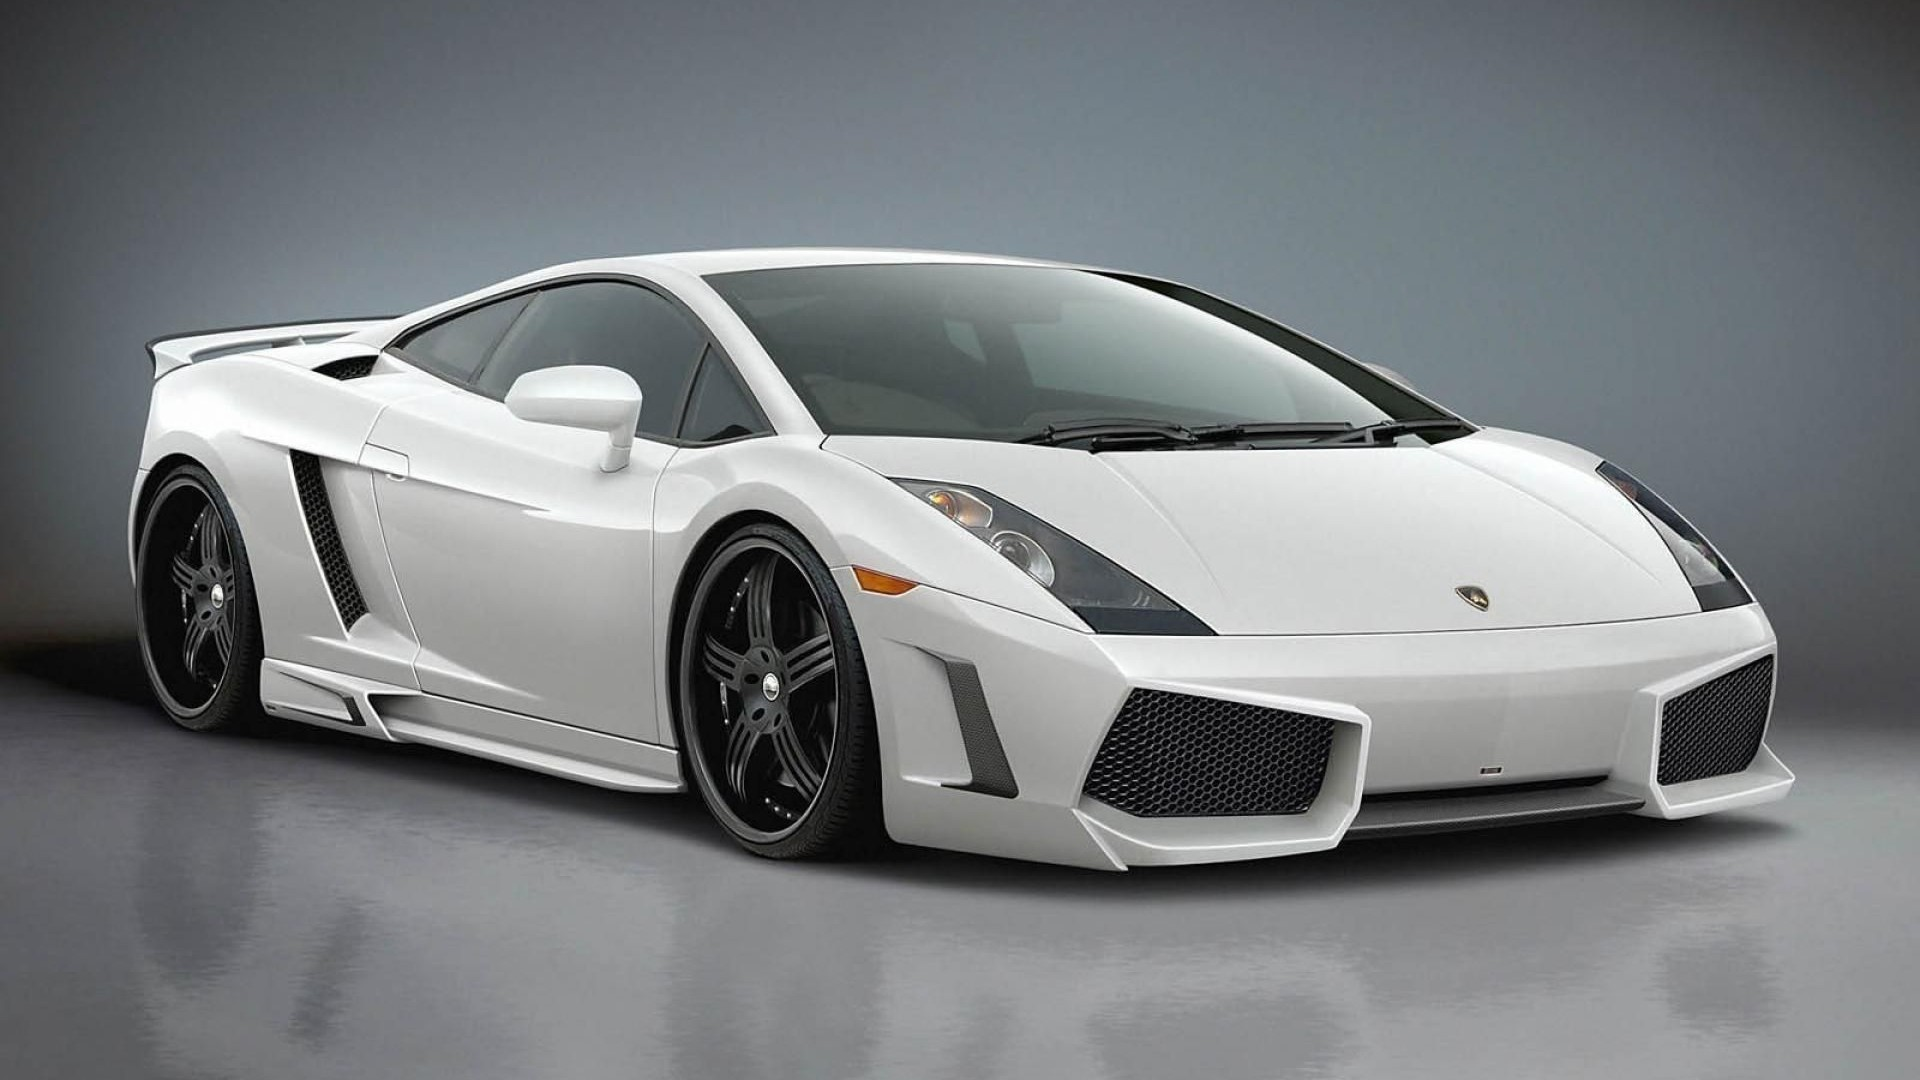 68153496997188-lamborghini-gallardo-wallpaper